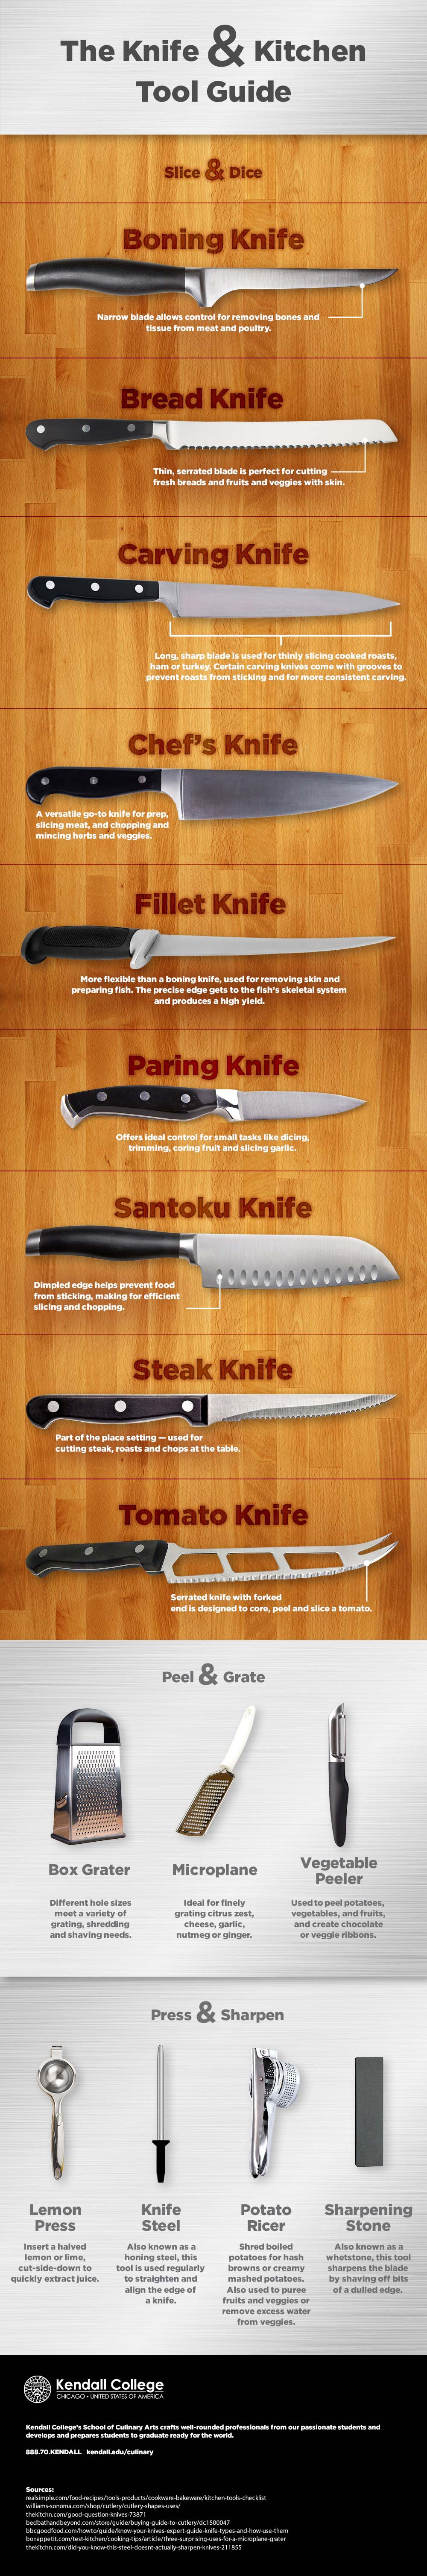 kitchen knives guide the knife amp kitchen tool guide infographic 13639